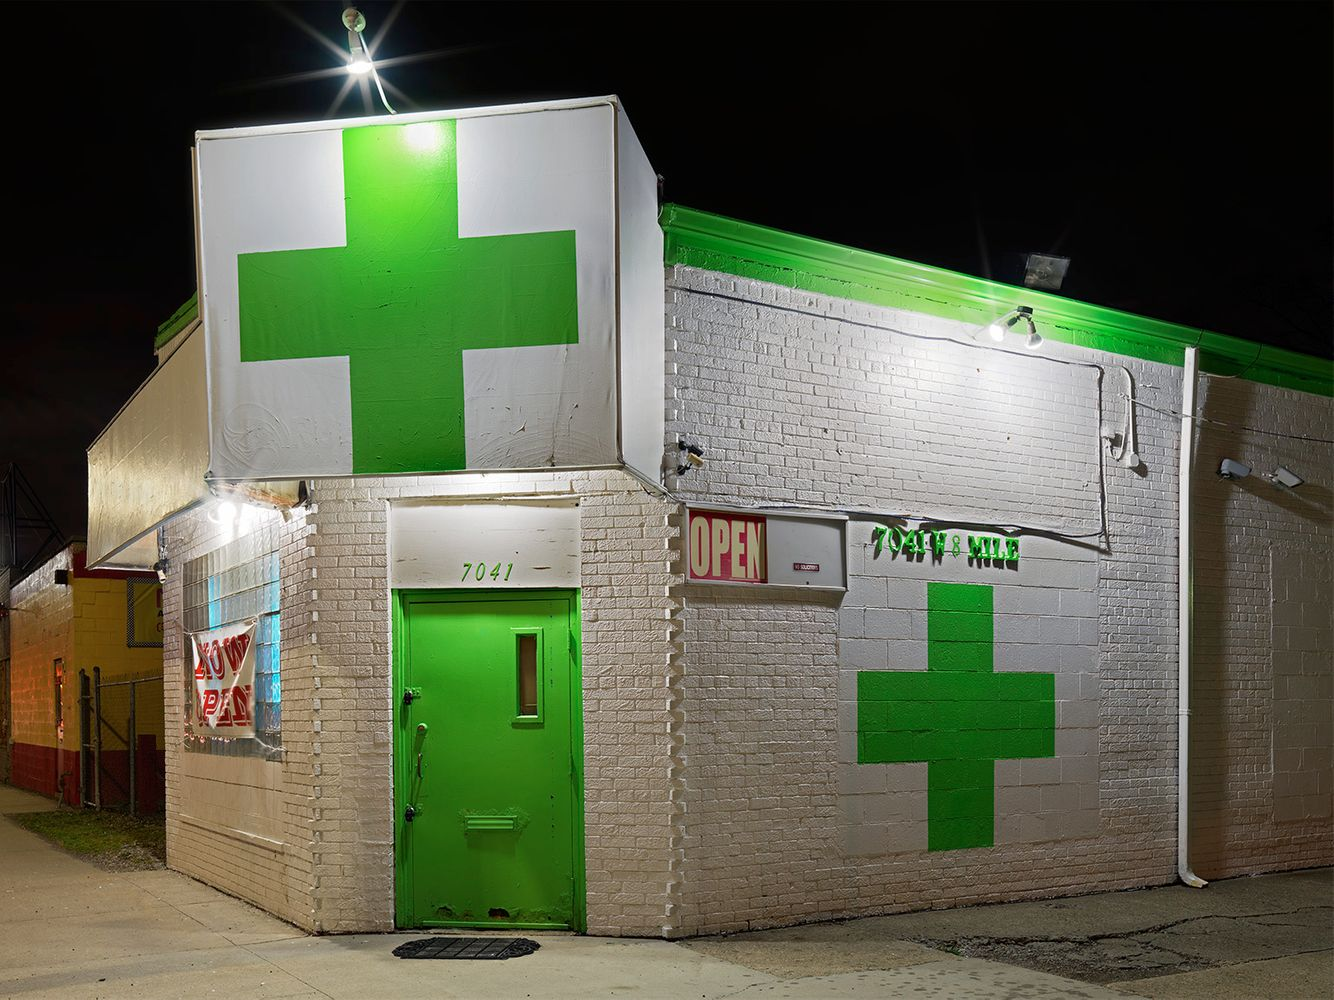 Medical Marijuana Dispensary #6, Westside, Detroit 2016